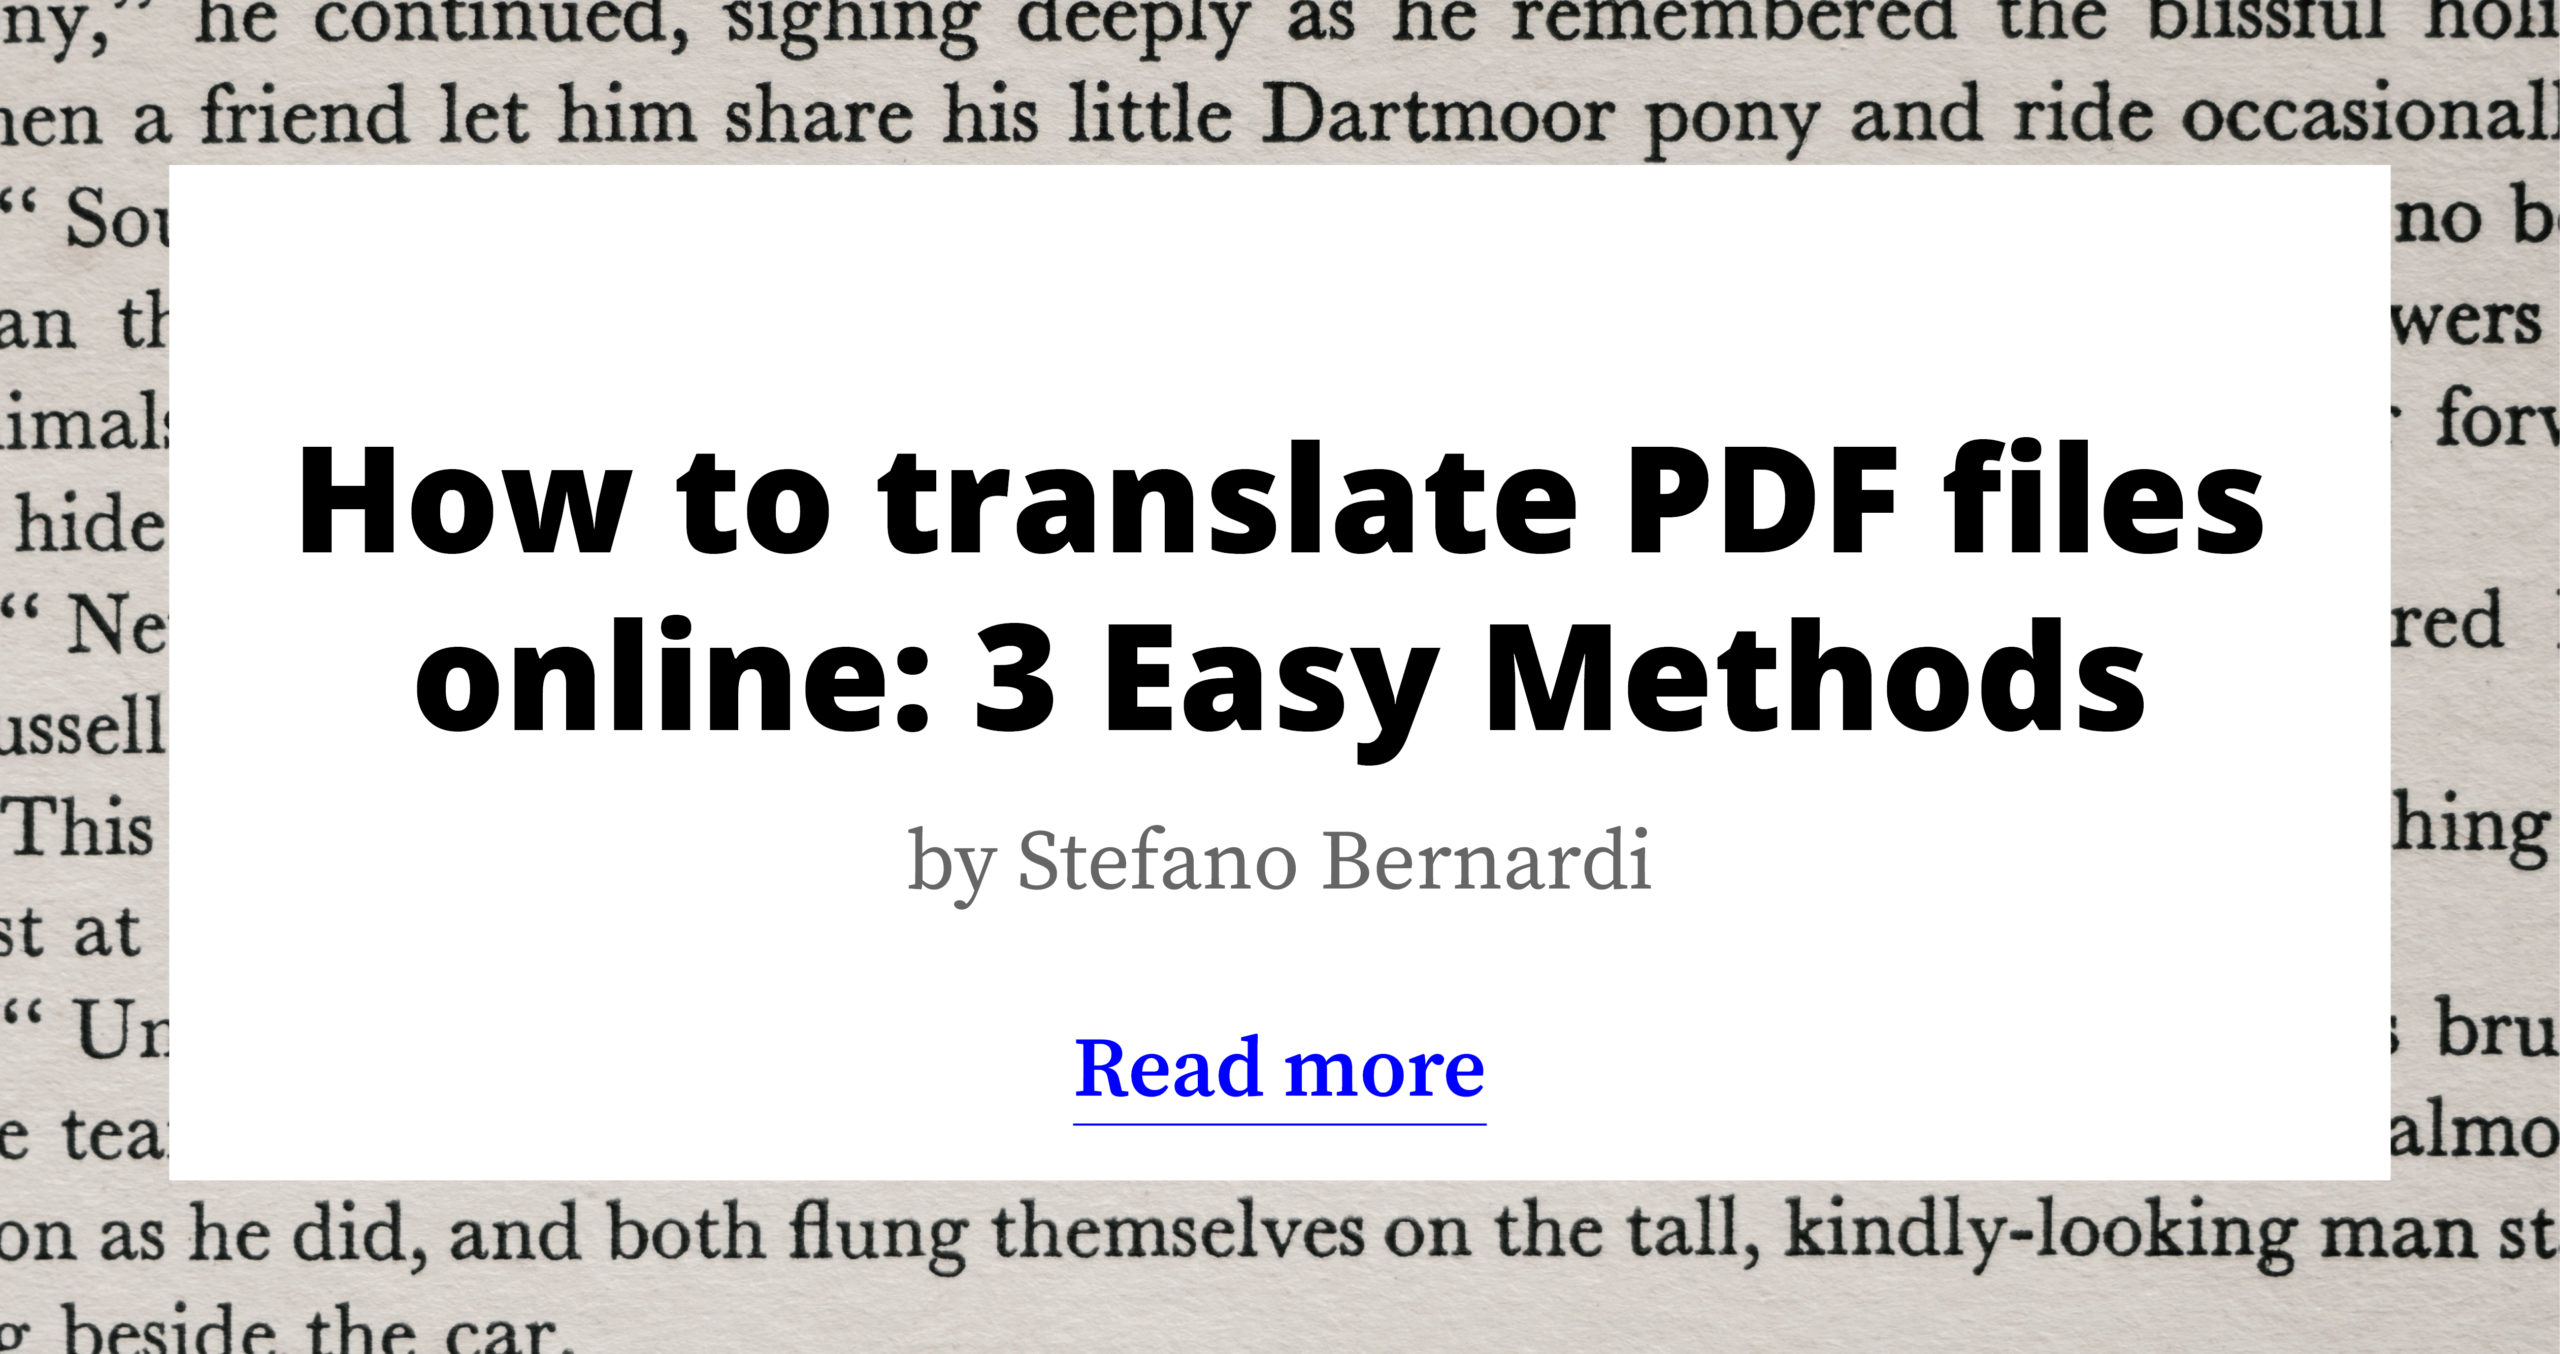 How to Translate PDF Files Online: 3 Easy Methods